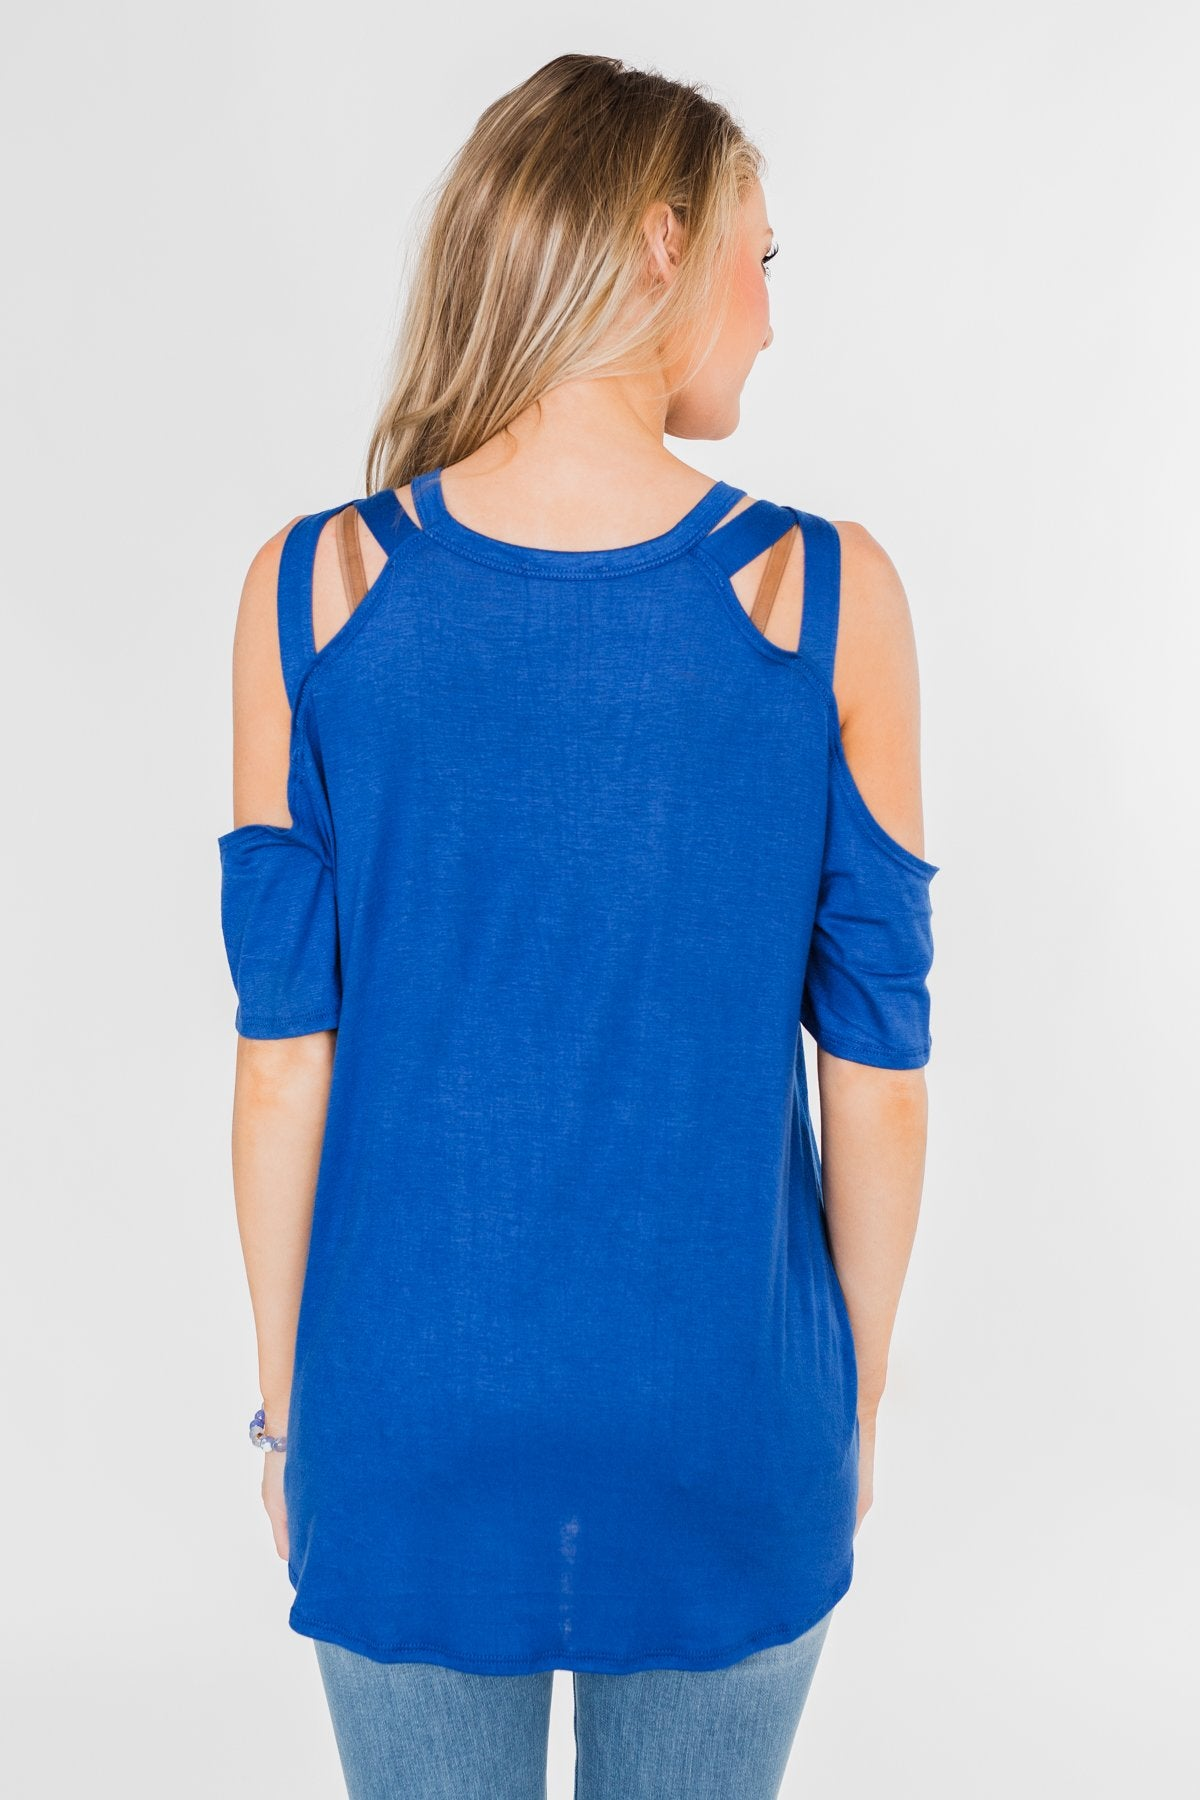 Feeling Alive Cold Shoulder Top- Royal Blue